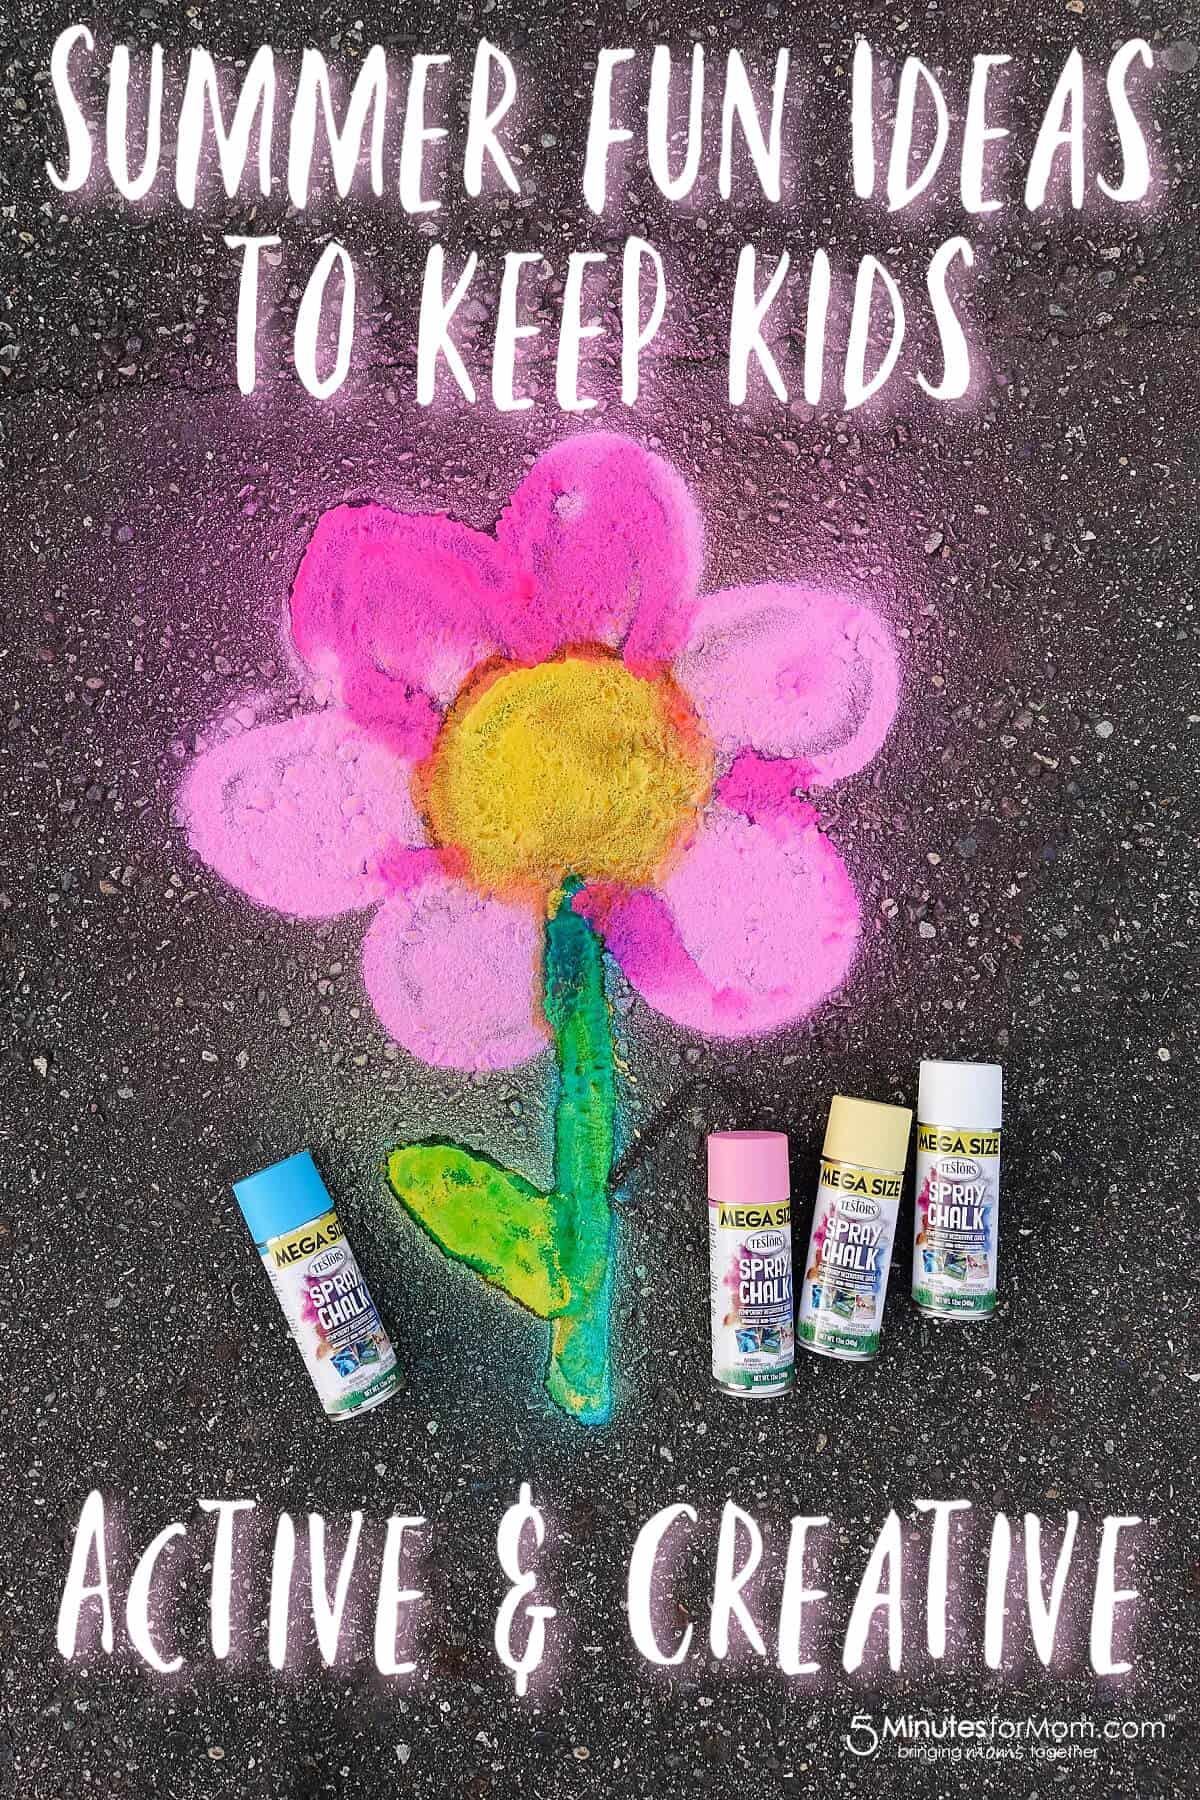 Summer Fun Ideas To Keep Kids Active And Creative